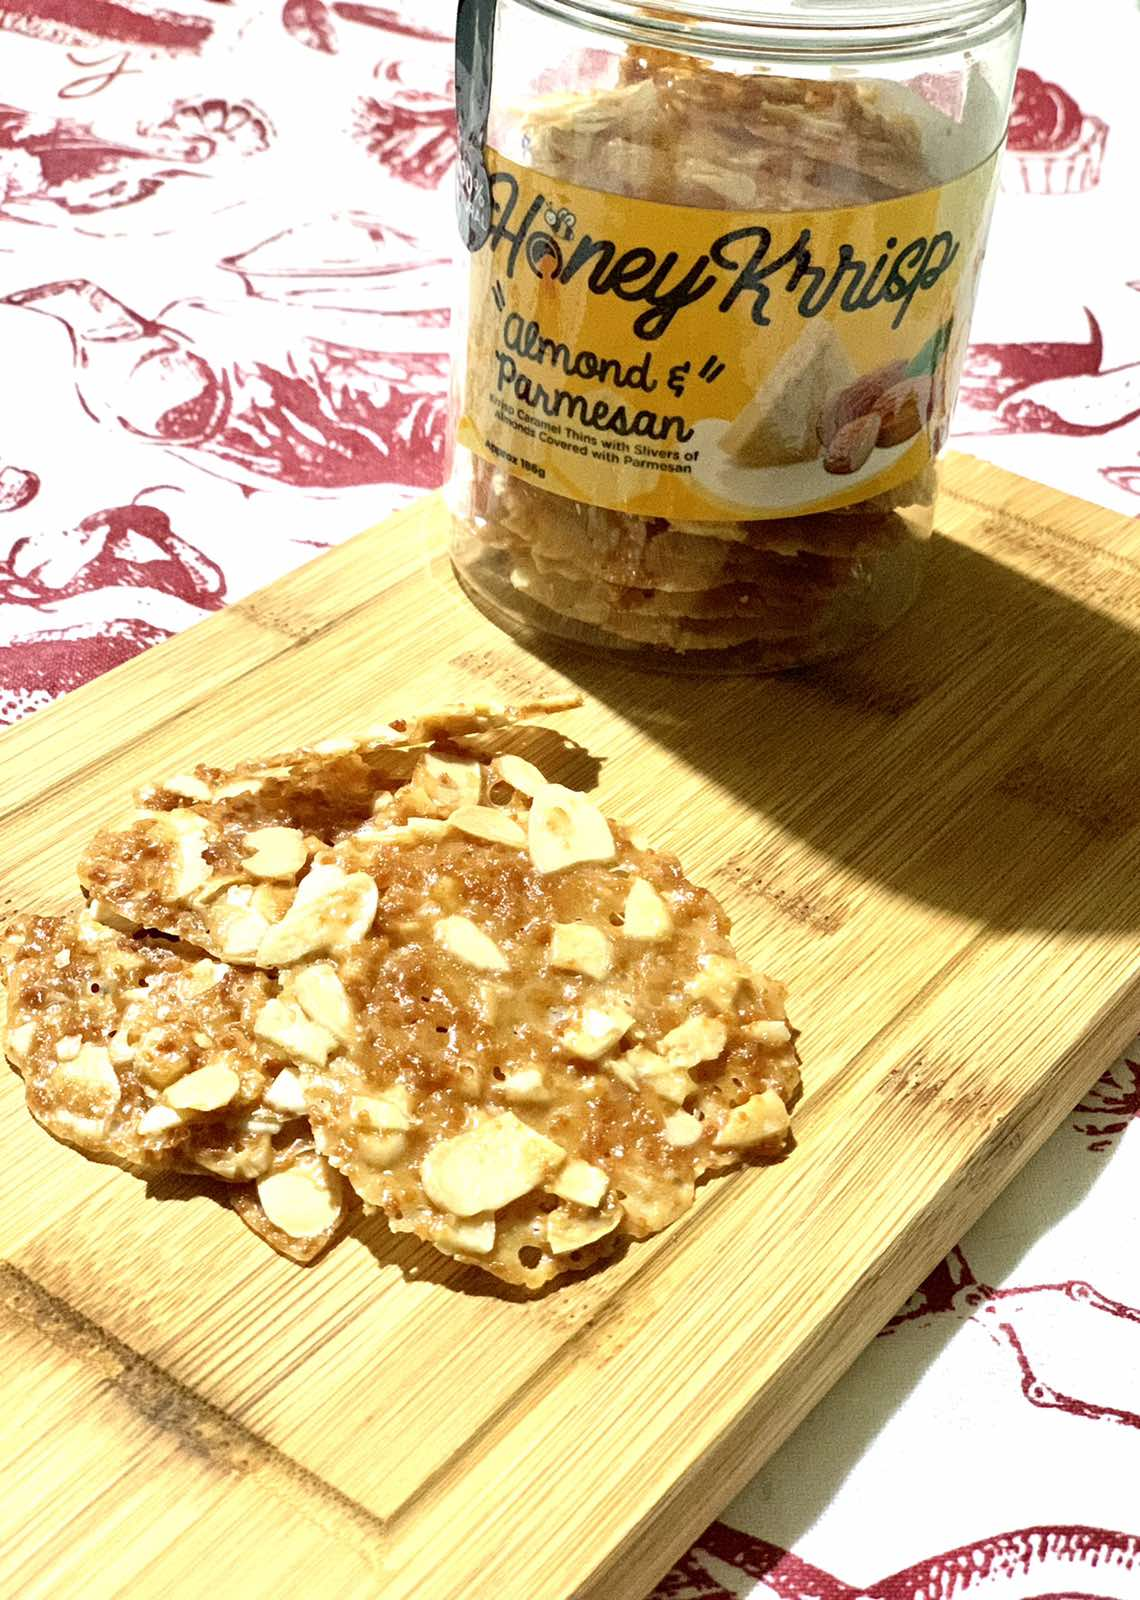 Pieces of Honey Krrisp on a wooden board with a bottle on the side.